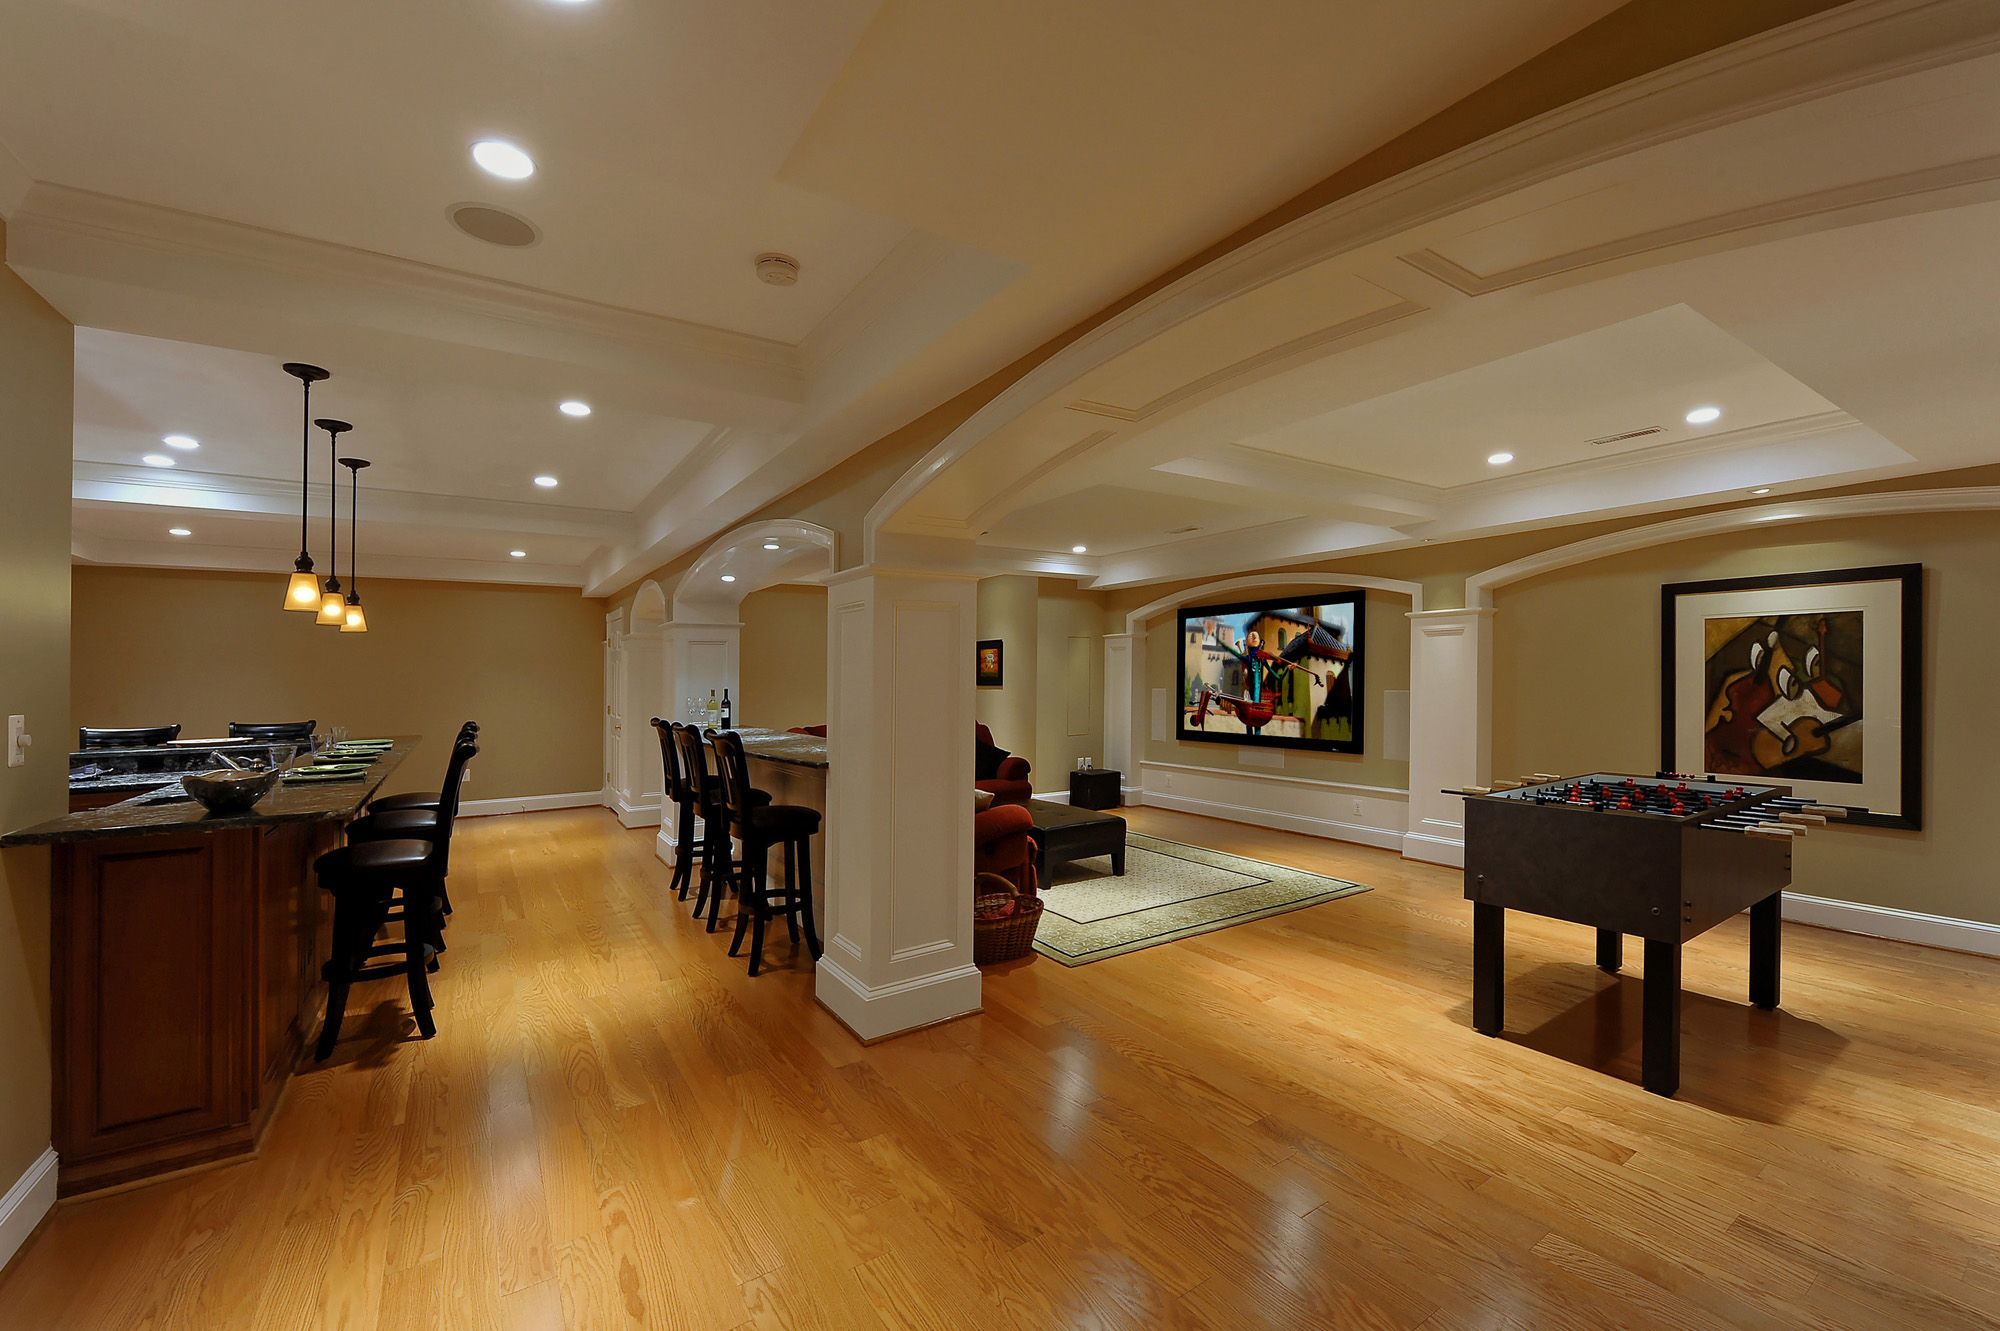 Lower Level Renovation Creates Wonderful Spaces for